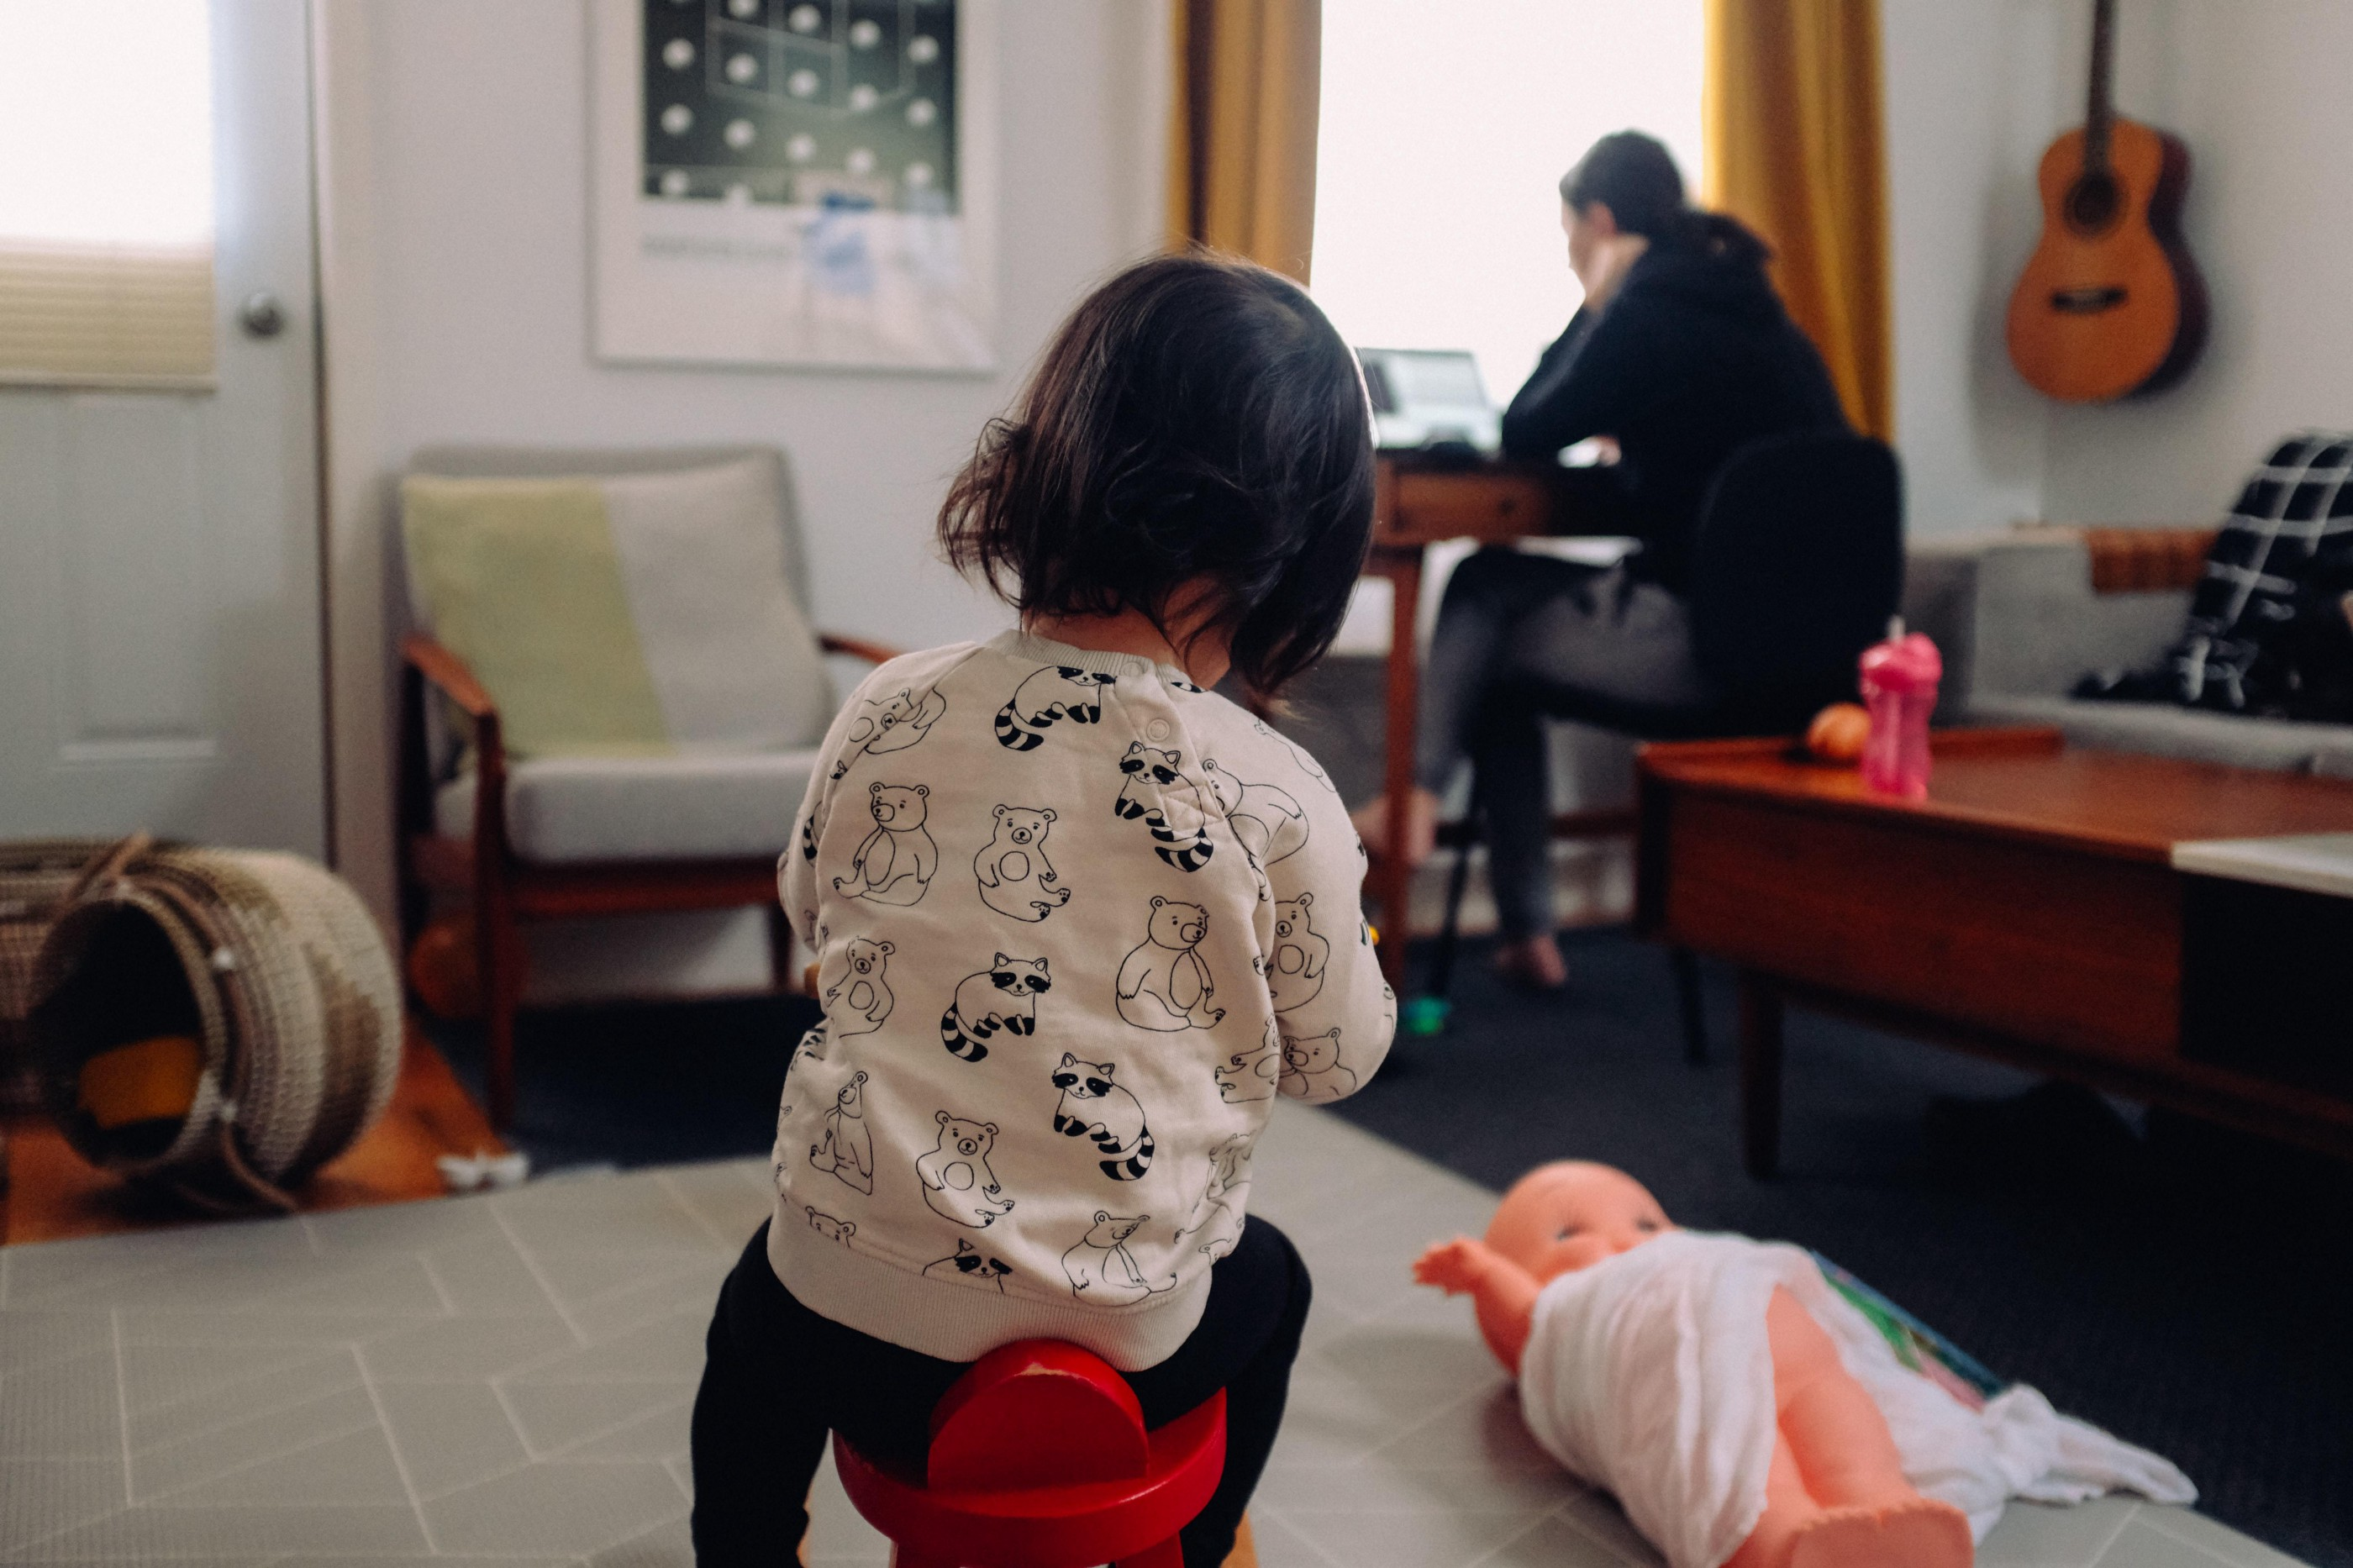 Mother working from home with small child in foreground